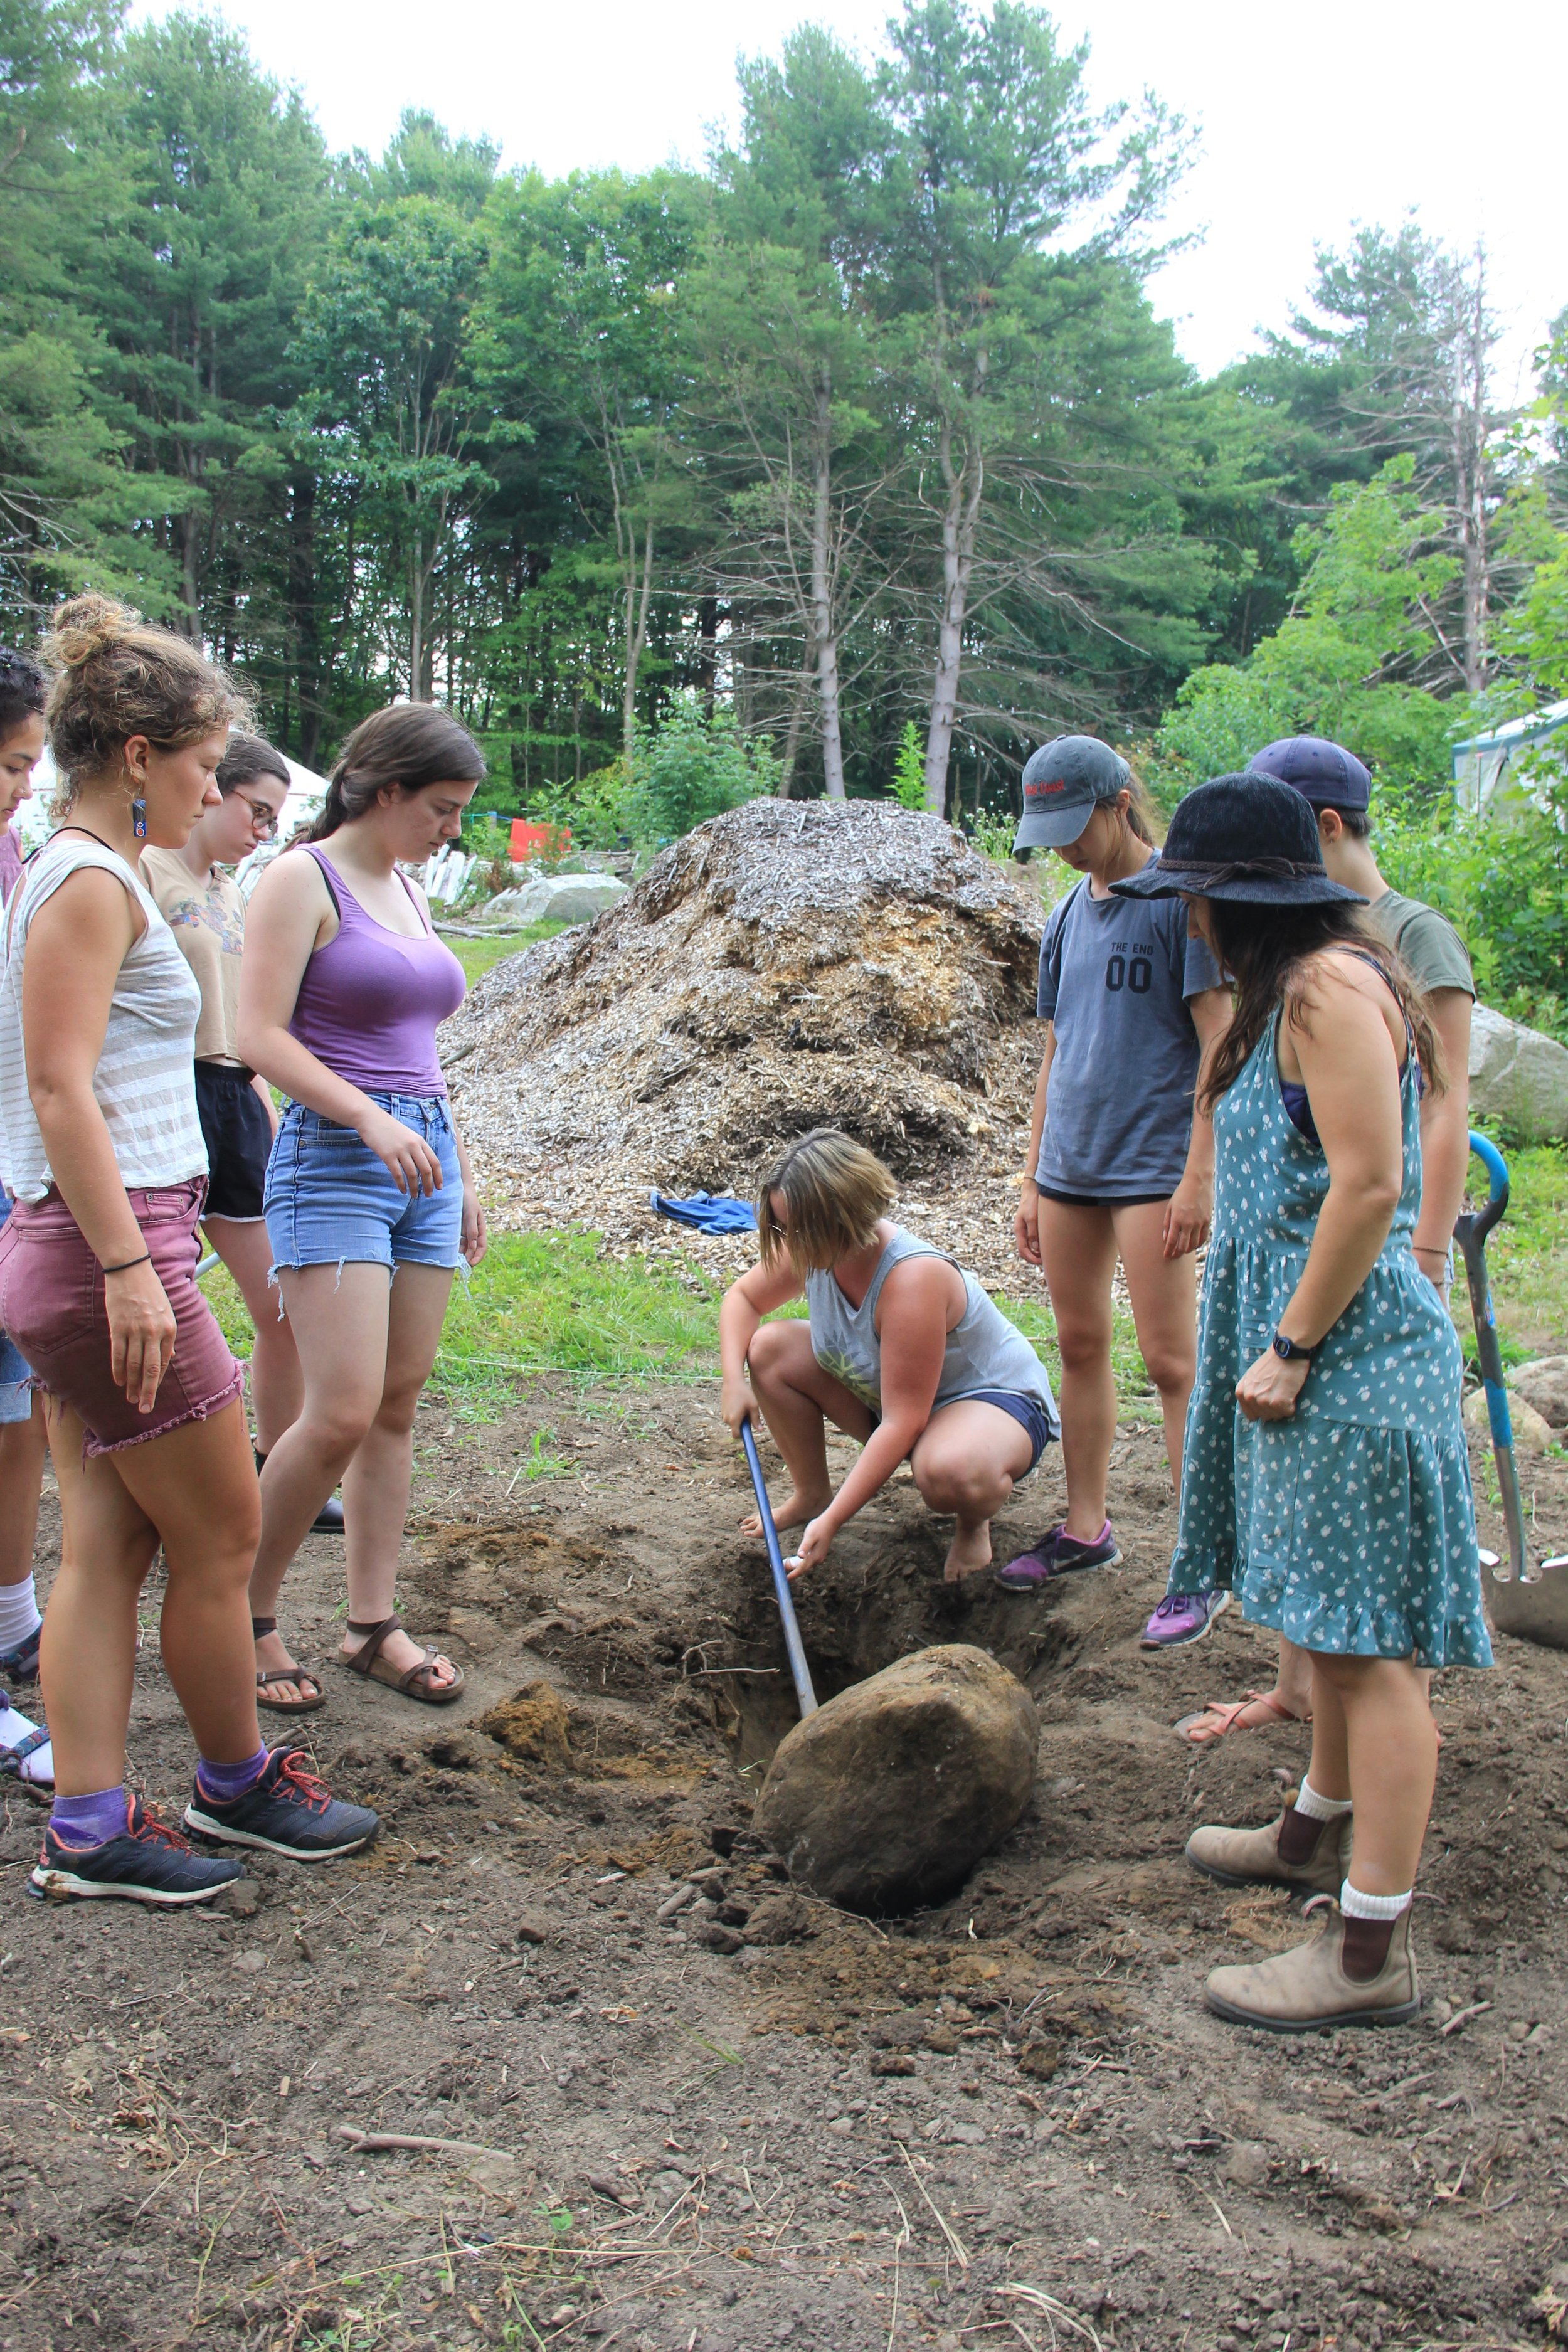 people power confronts shutesbury's best crop: rocks